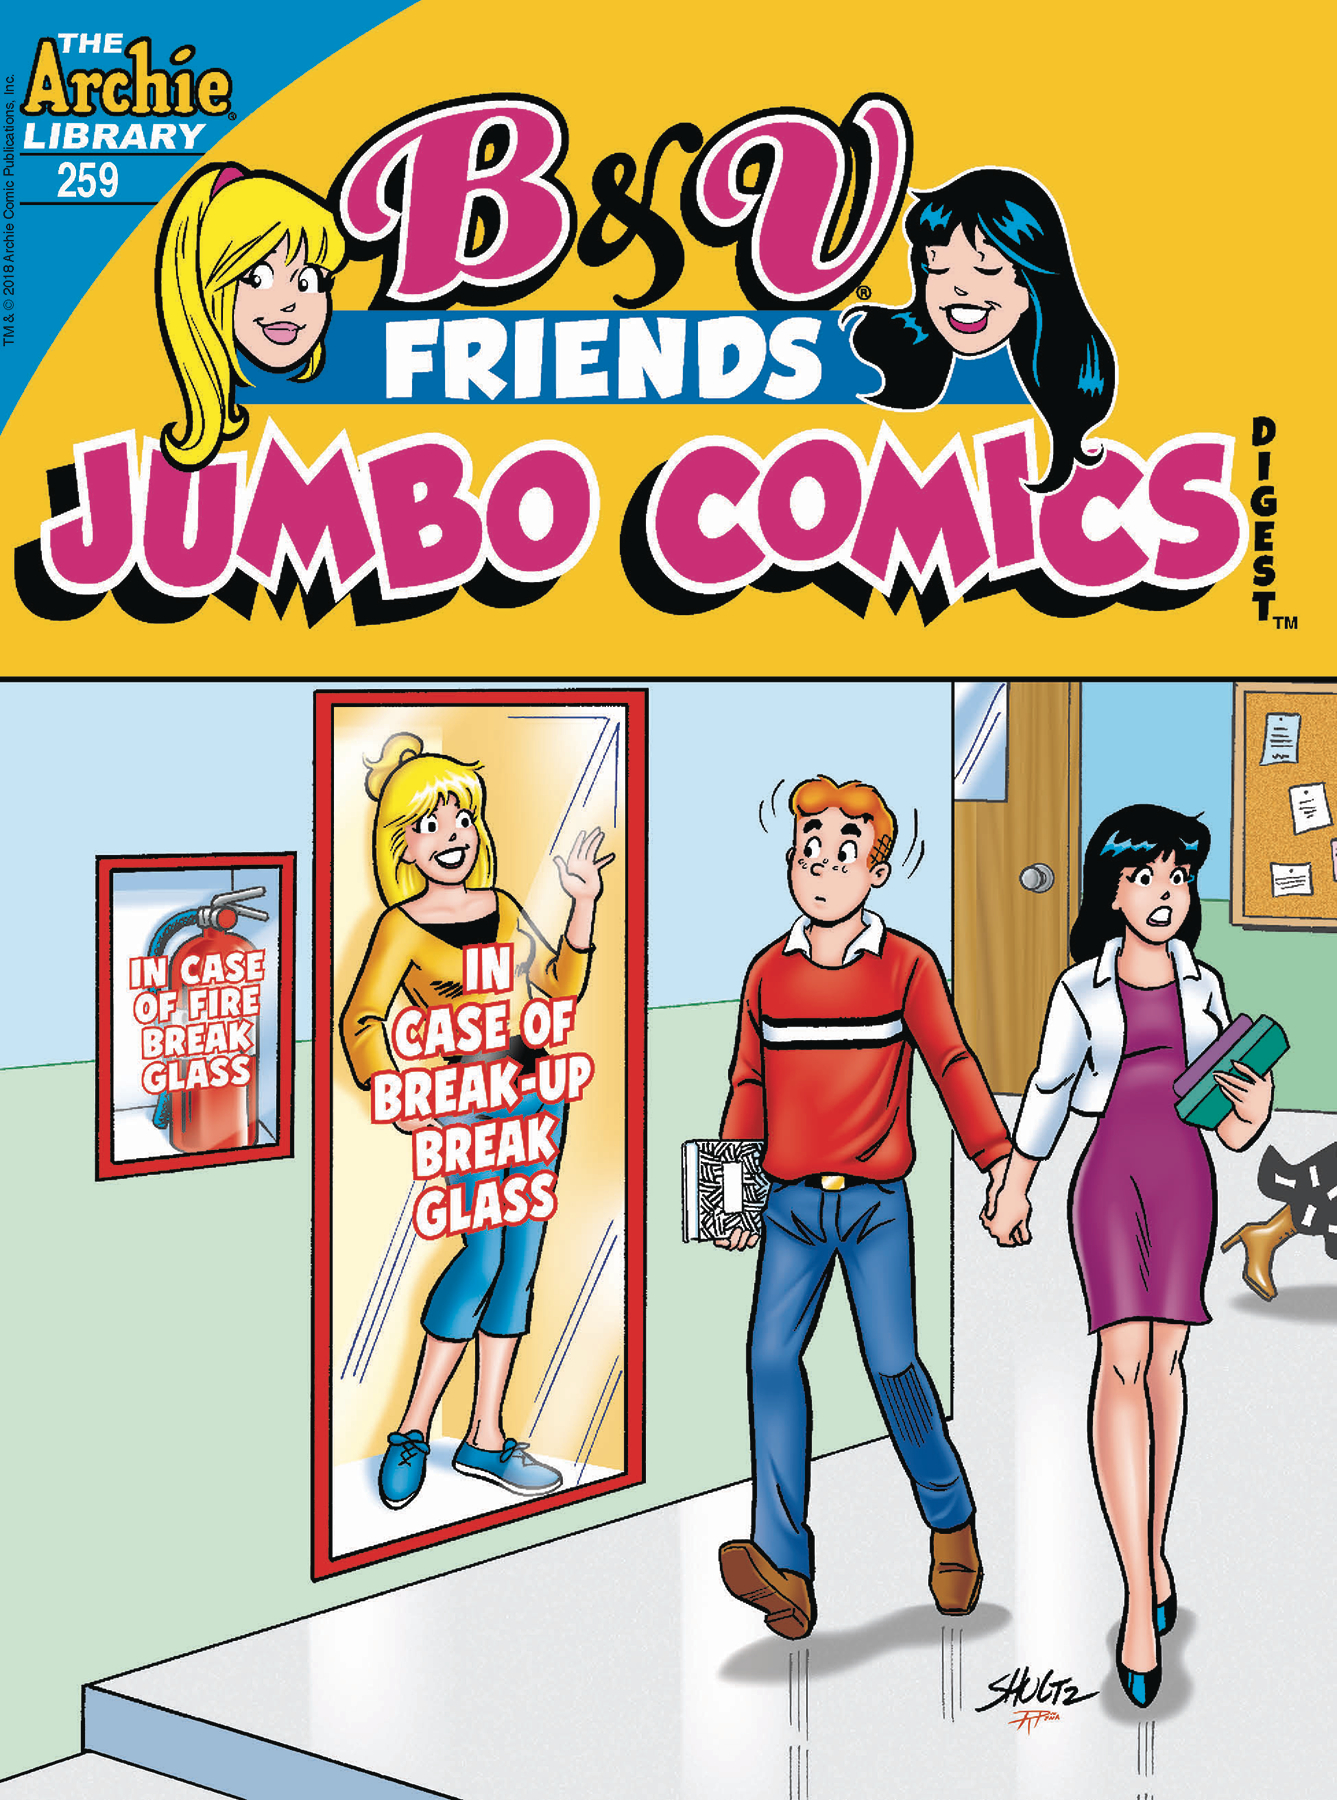 B & V FRIENDS JUMBO COMICS DIGEST #259